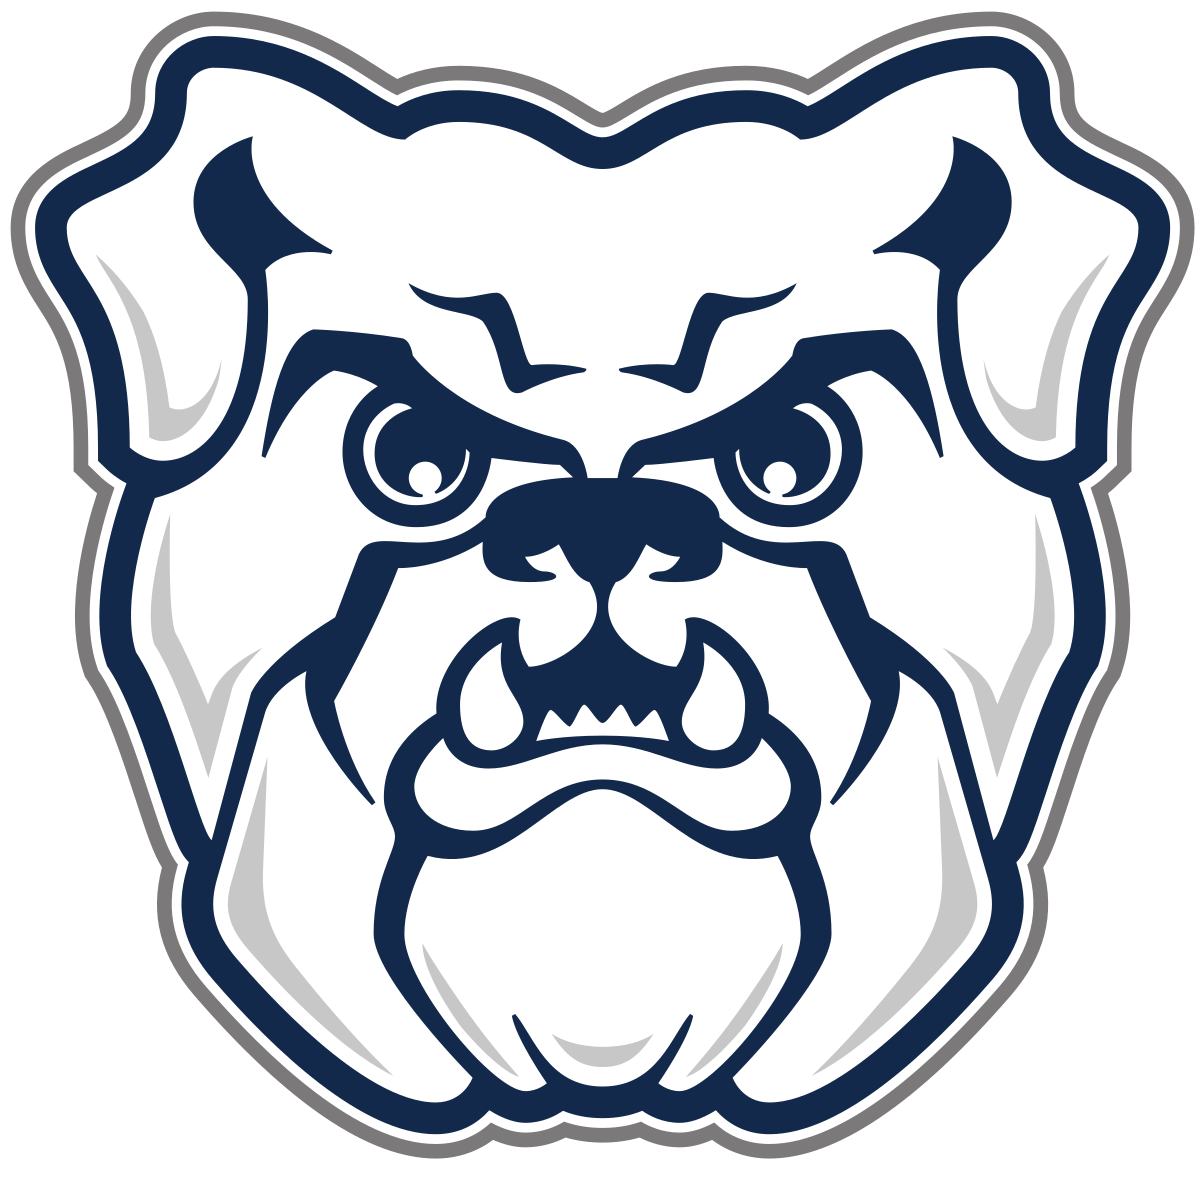 Butler wikipedia. Drawing bulldogs bulldog head vector